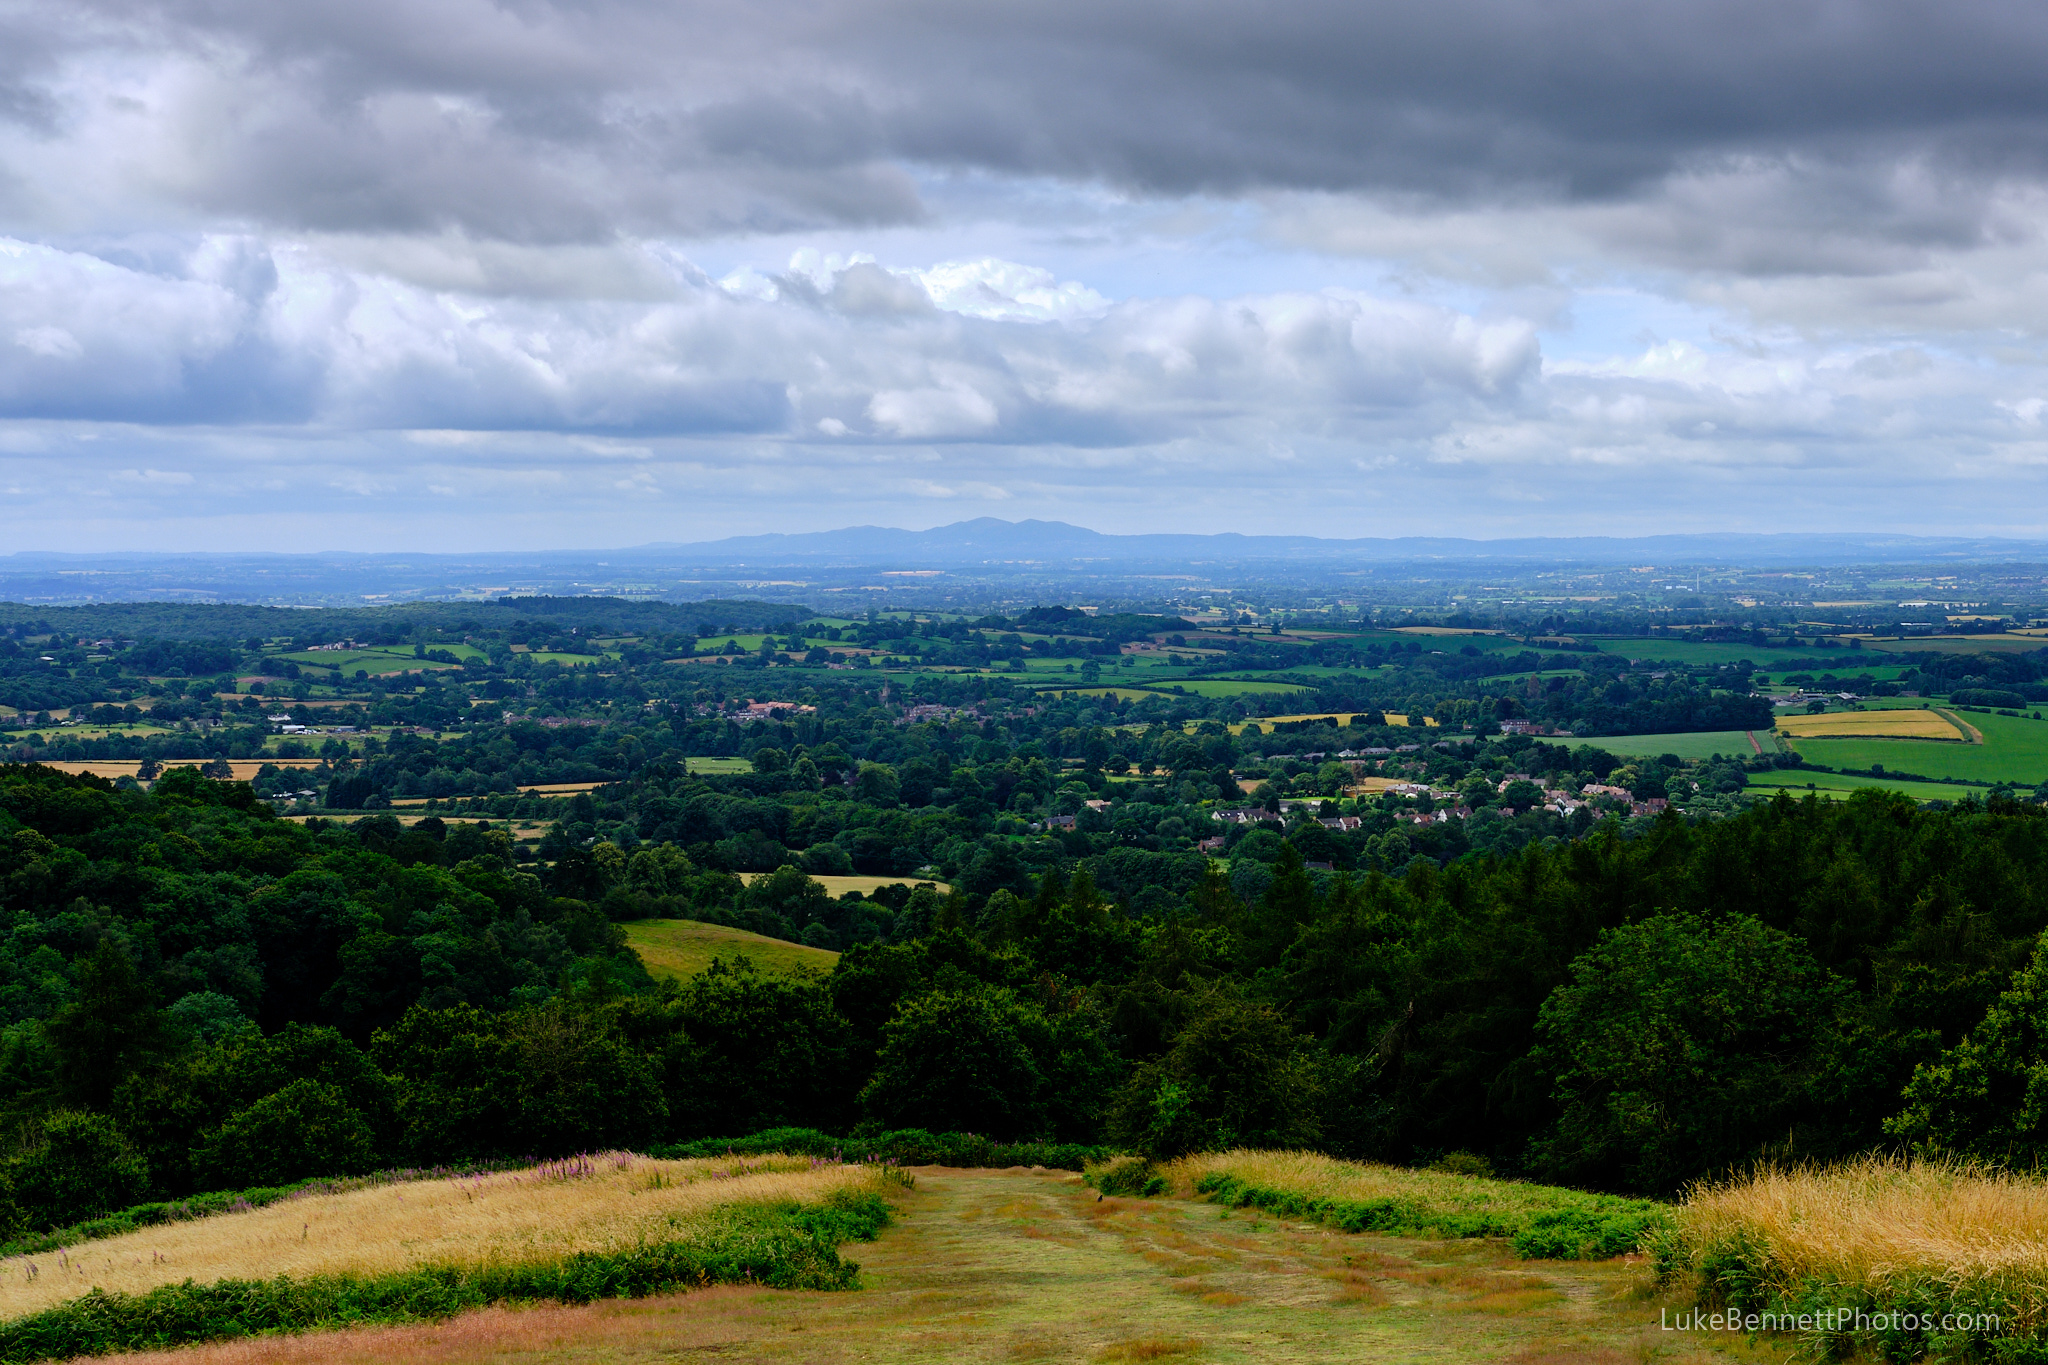 View from the highest point of the Clent Hills